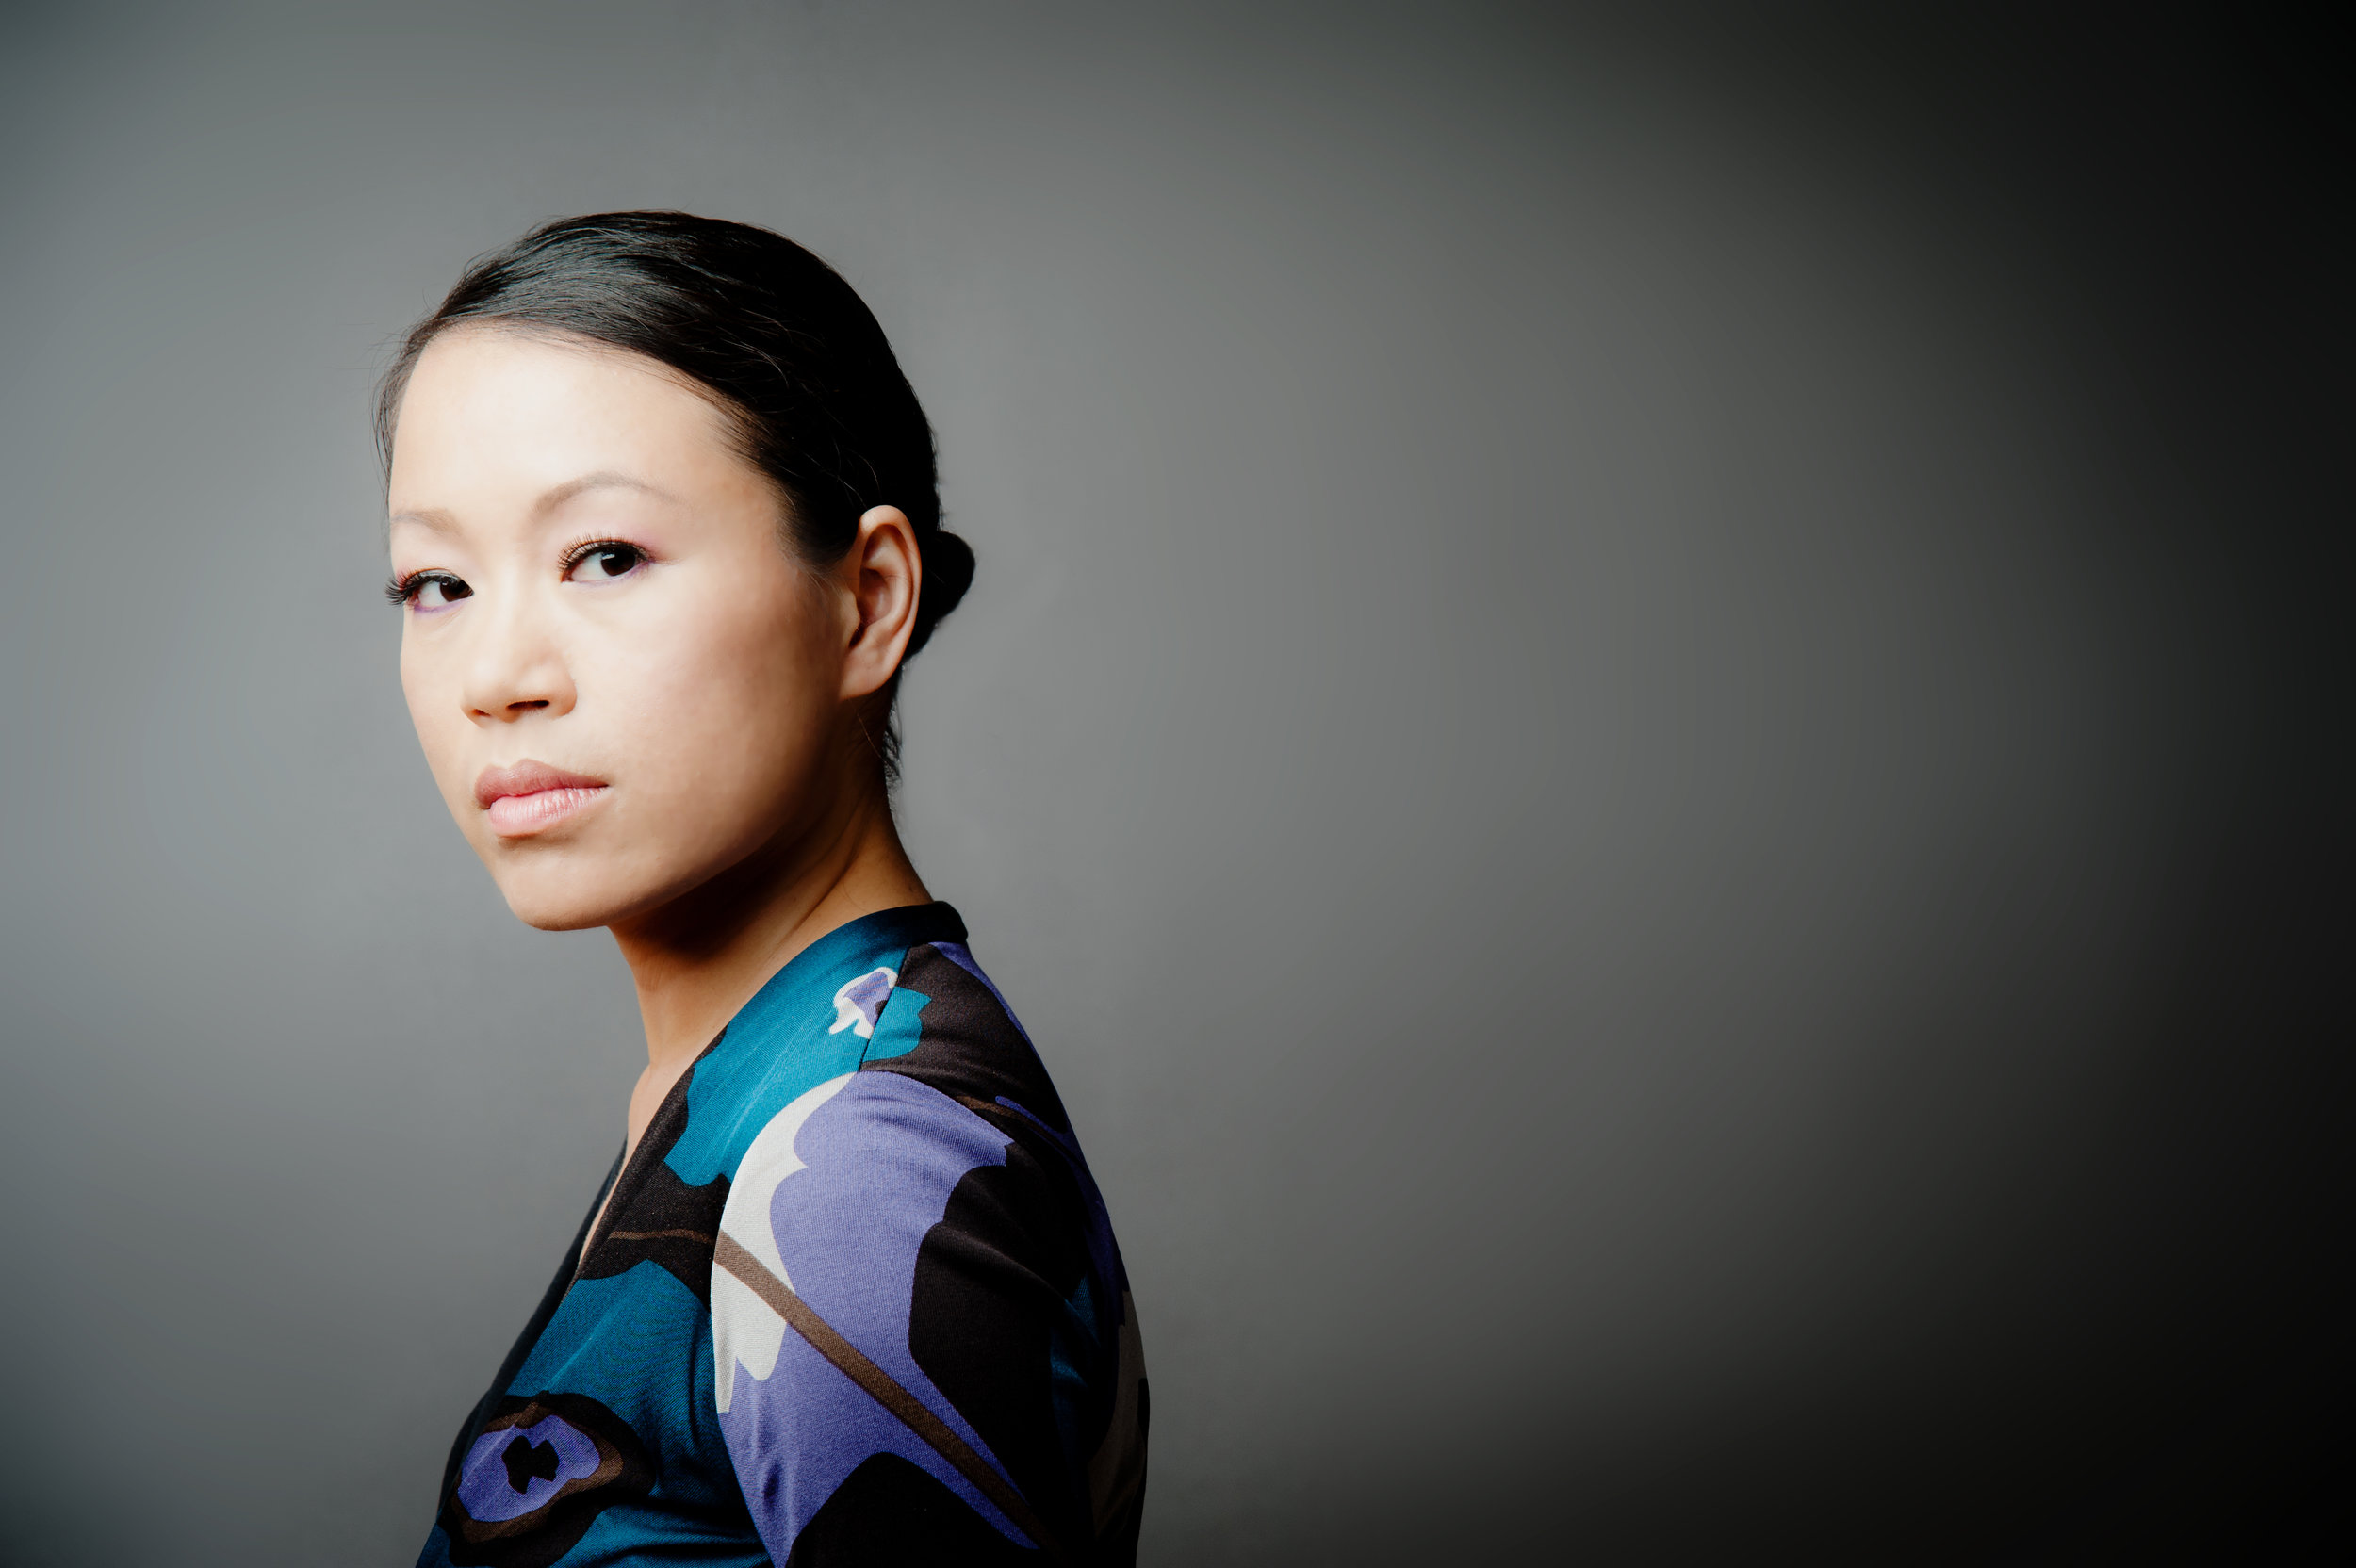 "Aiyun Huang - 2015 Host   The ever-evolving Aiyun Huang enjoys a musical life as soloist, chamber musician, researcher, teacher and producer. She was the First Prize and the Audience Award winner at the Geneva International Music Competition in 2002. Her past highlights include performances at the Victoria Hall in Geneva, Weill Recital Hall in New York, Los Angeles Philharmonic Orchestra's Green Umbrella Series, LACMA Concert Series, Holland Festival, Agora Festival in Paris, Banff Arts Festival, 7éme Biennale d'Art Contemporaine de Lyon, Vancouver New Music Festival, CBC Radio, La Jolla Summerfest, Scotia Festival, Cool Drummings, Montreal New Music Festival, Centro Nacional Di Las Artes in Mexico City, and National Concert Hall and Theater in Taipei. She is a founding member of Canadian trio Toca Loca with pianists Gregory Oh and Simon Docking. Since 2011, she has been performing with Musicians from soundSCAPE with soprano Tony Arnolds and pianist Thomas Rosenkranz. Her recent highlights include concerto appearances with the Taipei Symphony Orchestra and L'Orchestre Suisse Romande. Aiyun has commissioned and championed over 100 works in the last two decades working with composers internationally. Upcoming collaborative projects include Tacoma Narrows Monochord with Sean Griffin and a new piece by Jaroslaw Kapuscinski with the St. Lawrence String Quartet.  She is a researcher at the Centre for Interdisciplinary Research in Music Media and Technology in Montreal. In 2012, Mode Records released Save Percussion Theater featuring Aiyun Huang and friends documenting important theatrical works in the percussion repertoire. Aiyun's current research focuses on the cross-pollination between science and music from the performer's perspective. Her ongoing project ""Memory in Motion"" focuses on the understanding of memory in percussion ensemble playing. In May 2013 she co-hosted Random Walks: Music of Xenakis and Beyond with Canada's leading research institutions: Perimeter Institute, the Fields Institute for Research in Mathematical Sciences, and Institute for Quantum Computing. Recent recordings include Inflorescences on New Focus Recording and After JSB-RS on Naxos.  Born in Kaohsiung, a southern city of Taiwan, Aiyun holds a Doctor of Musical Arts and Master of Arts degree from the University of California, San Diego and a Bachelor of Arts degree from the University of Toronto. Her teachers included Steven Schick, Russell Hartenberger, Gaston Sylvestre, Robin Engelman, Bob Becker, and Francois Bedel. Between 2004 and 2006, she was a Faculty Fellow at UCSD. She currently holds the position of Associate Professor in Percussion and was recently appointed William Dawson Scholar at McGill University in Montreal, Canada. She regularly teaches and performs in summer festivals including the National Youth Orchestra of Canada and soundSCAPE Festival in the Italian Alps."